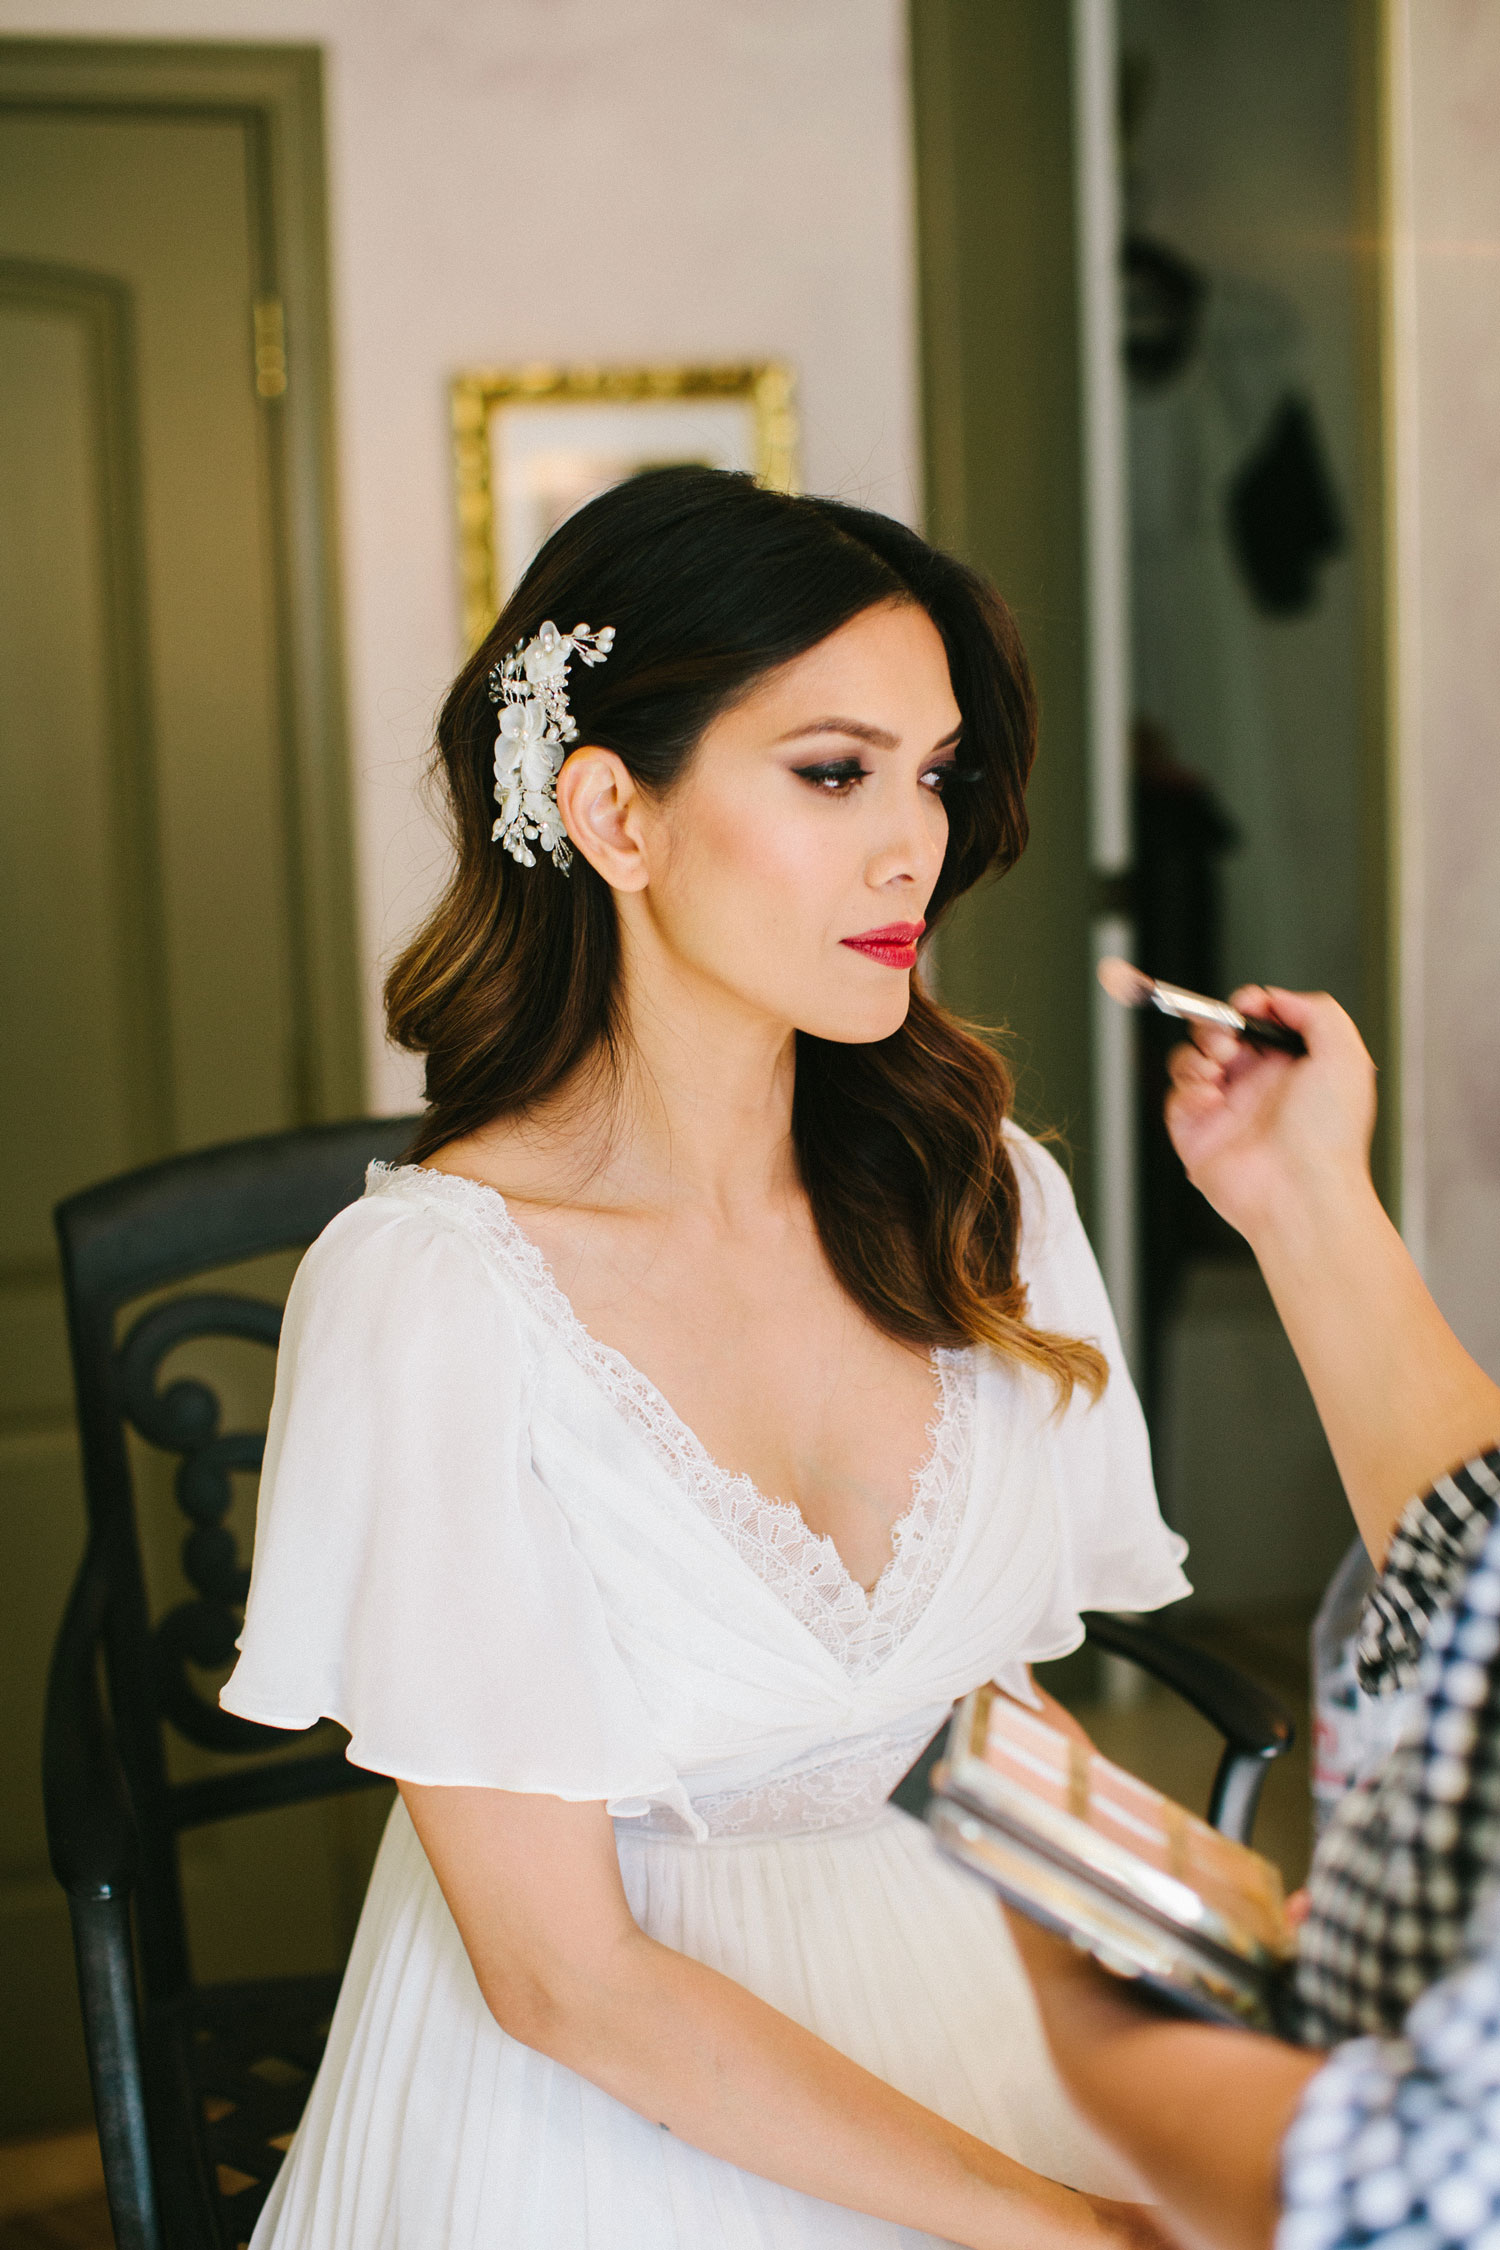 bride getting ready for wedding red lip jewel headpiece hair down boho dress